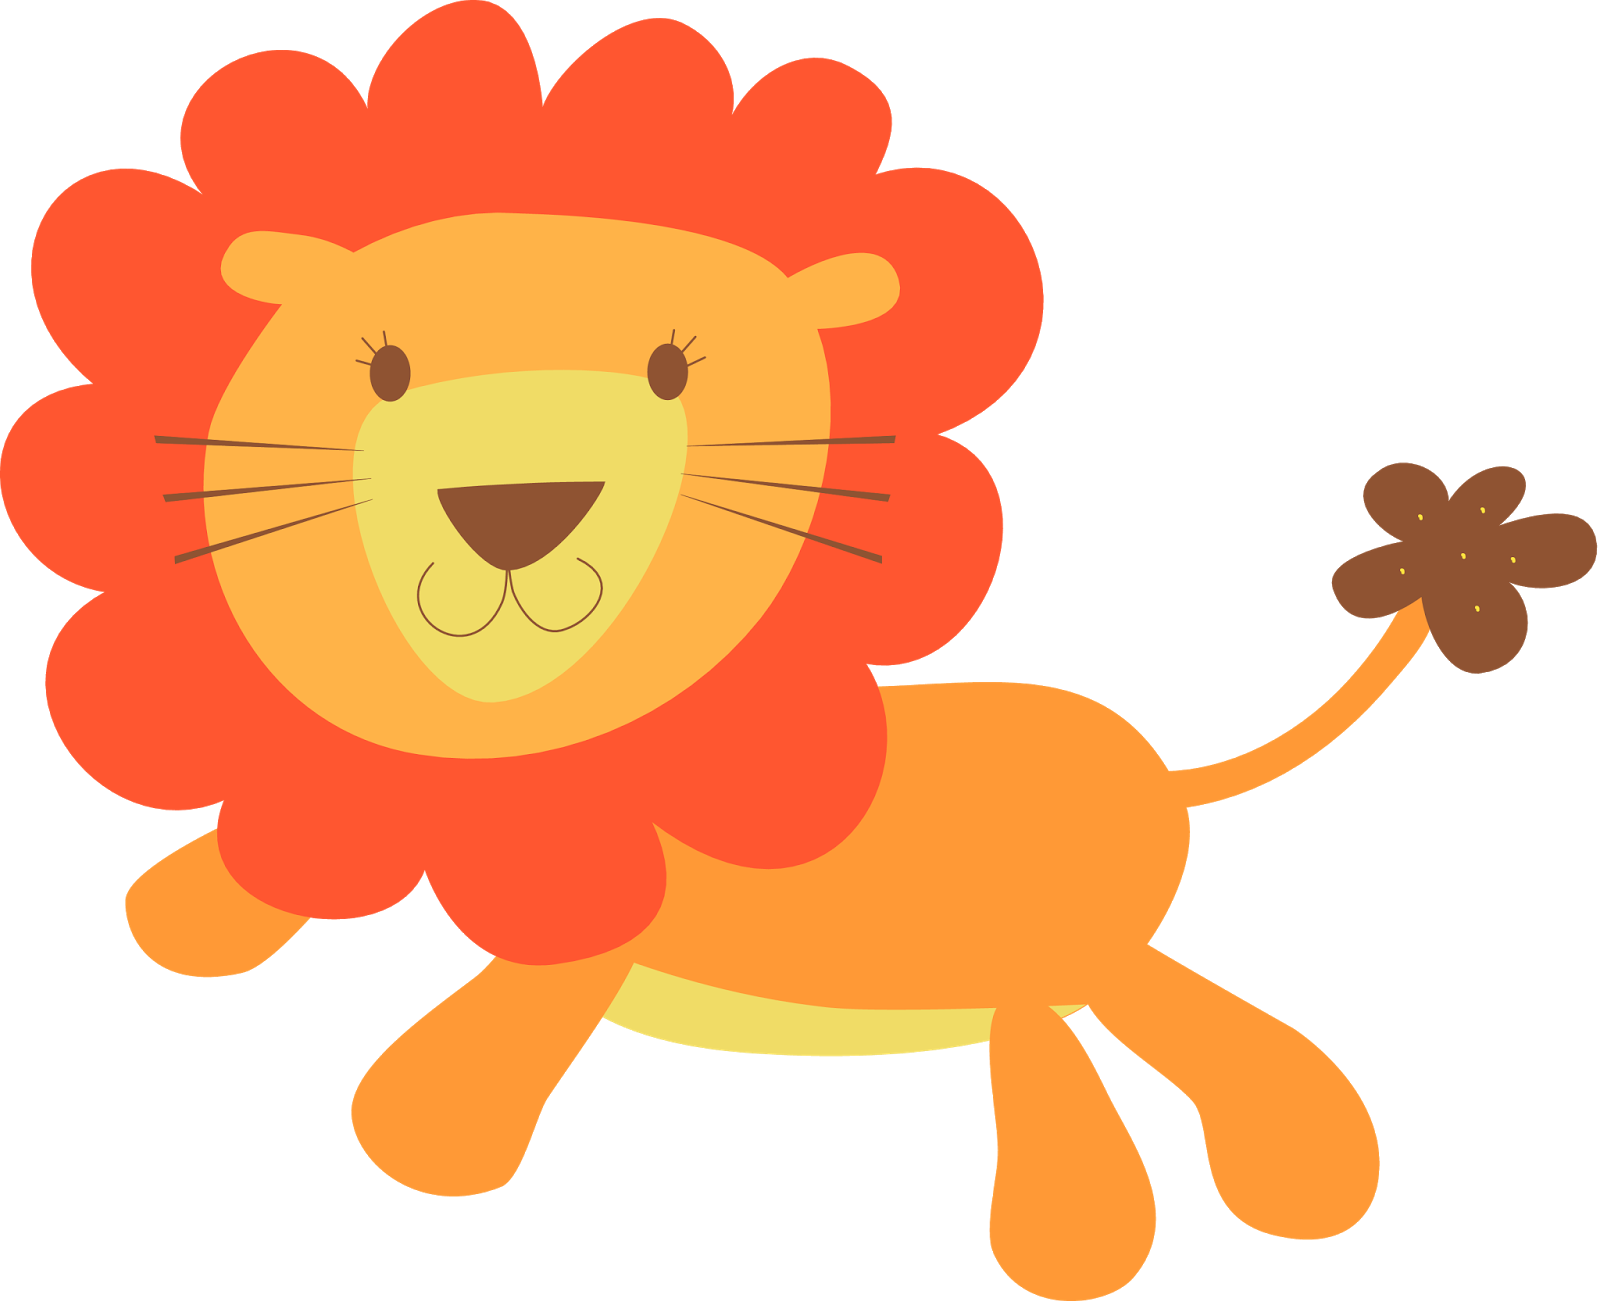 And lamb at getdrawings. Crown clipart lion